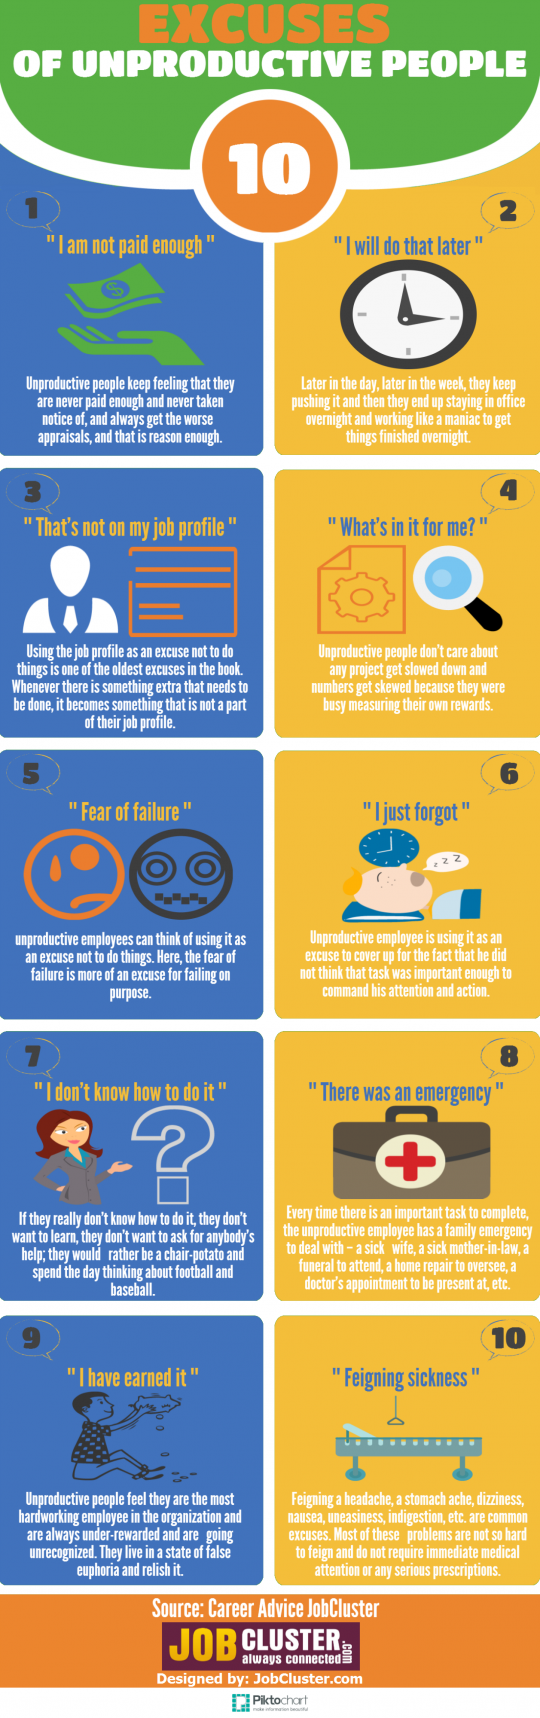 10 Excuses of Unproductive People